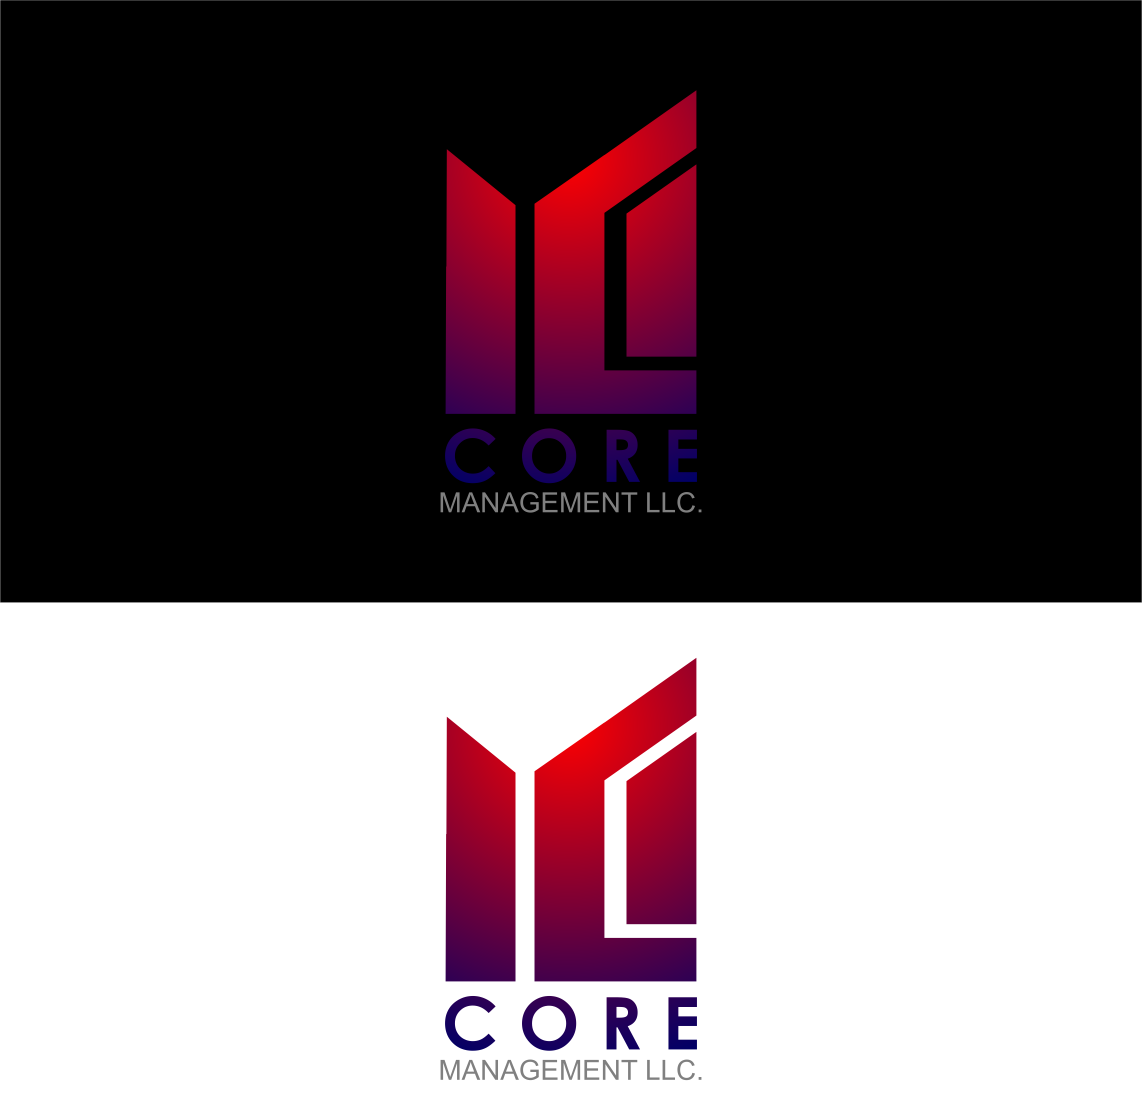 Logo Design by Agus Martoyo - Entry No. 197 in the Logo Design Contest Creative Logo Design for CORE Management, LLC.